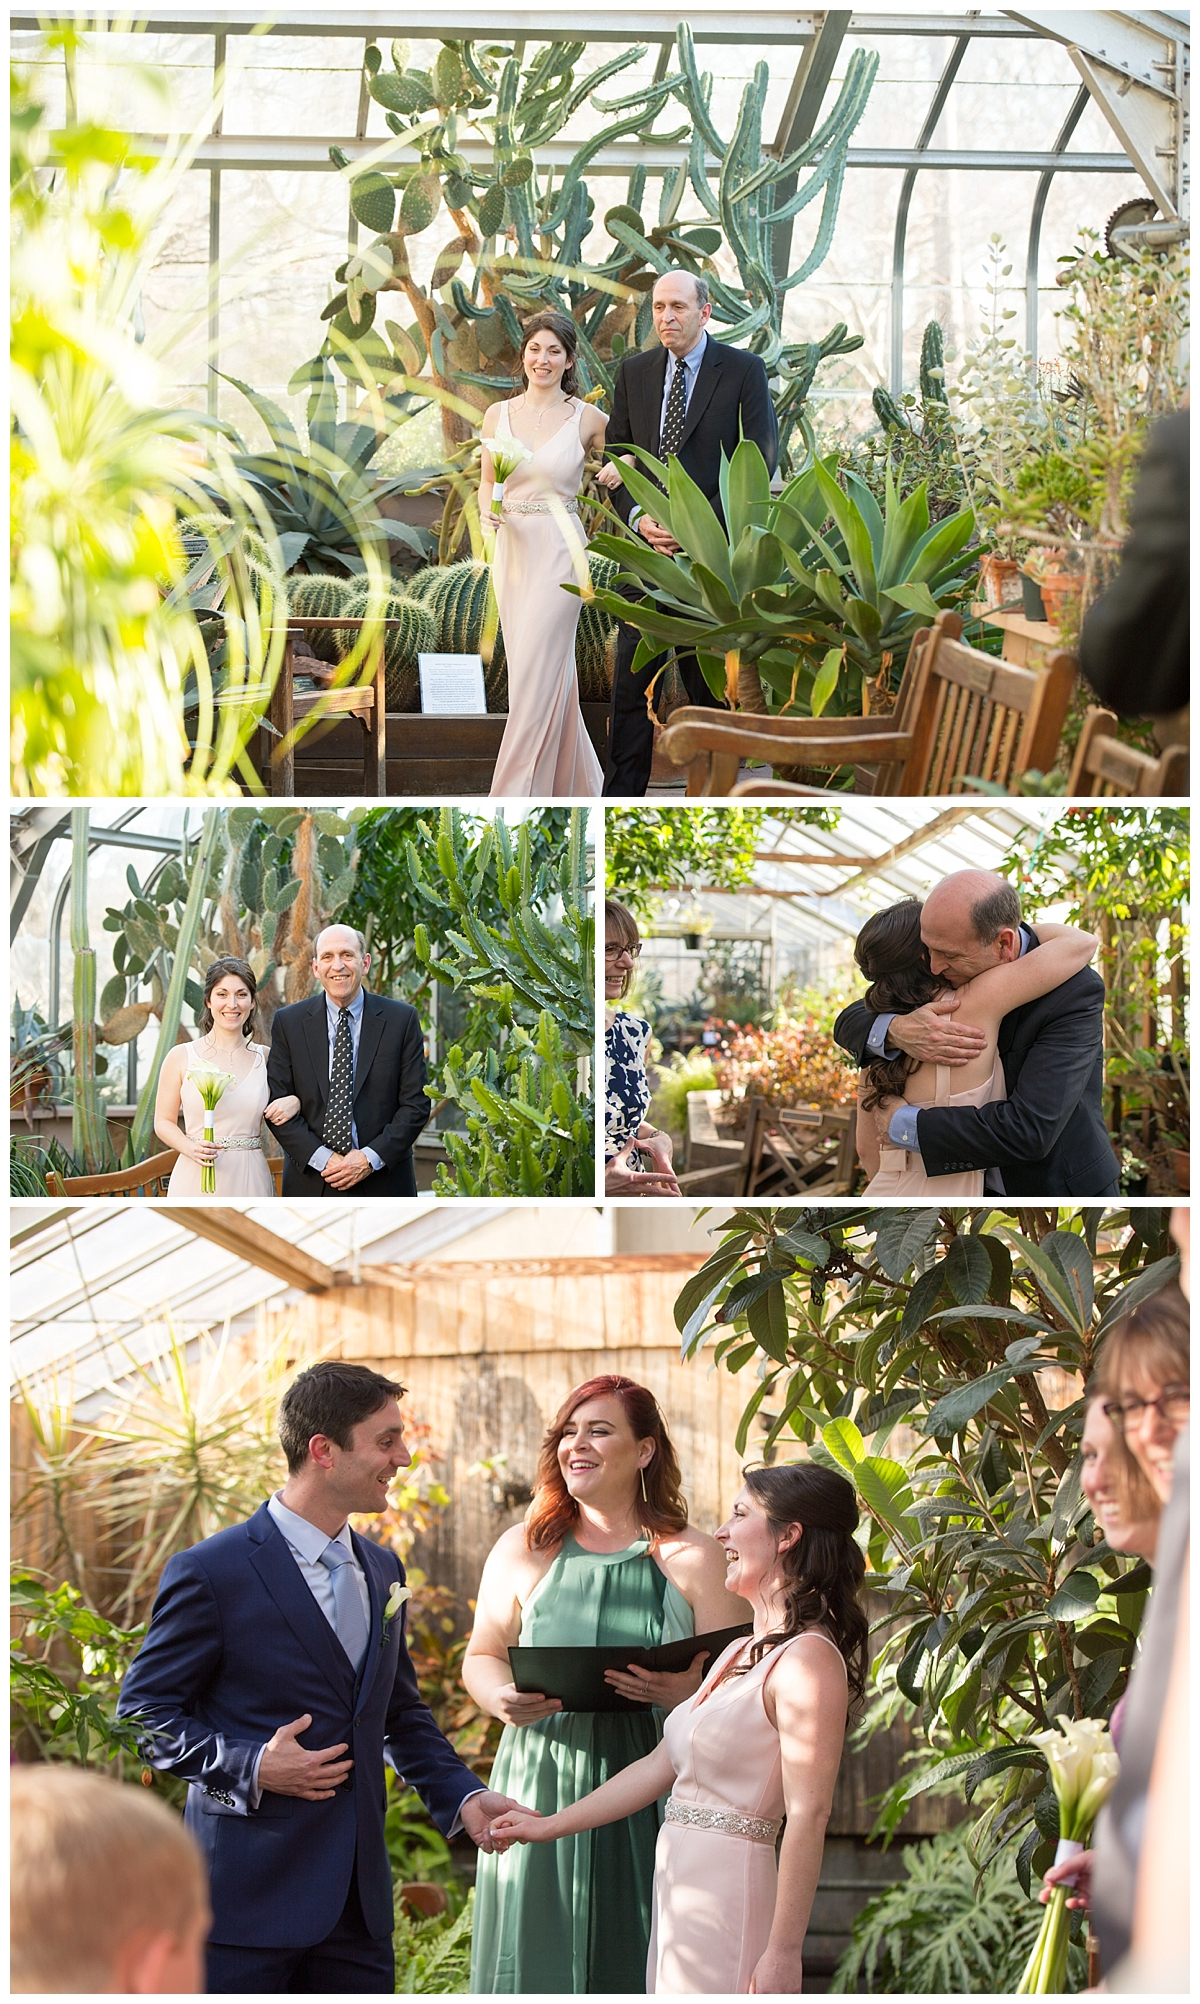 Highland Park Wedding, Lamberton Conservatory Wedding, Rochester New York, Wedding photographer